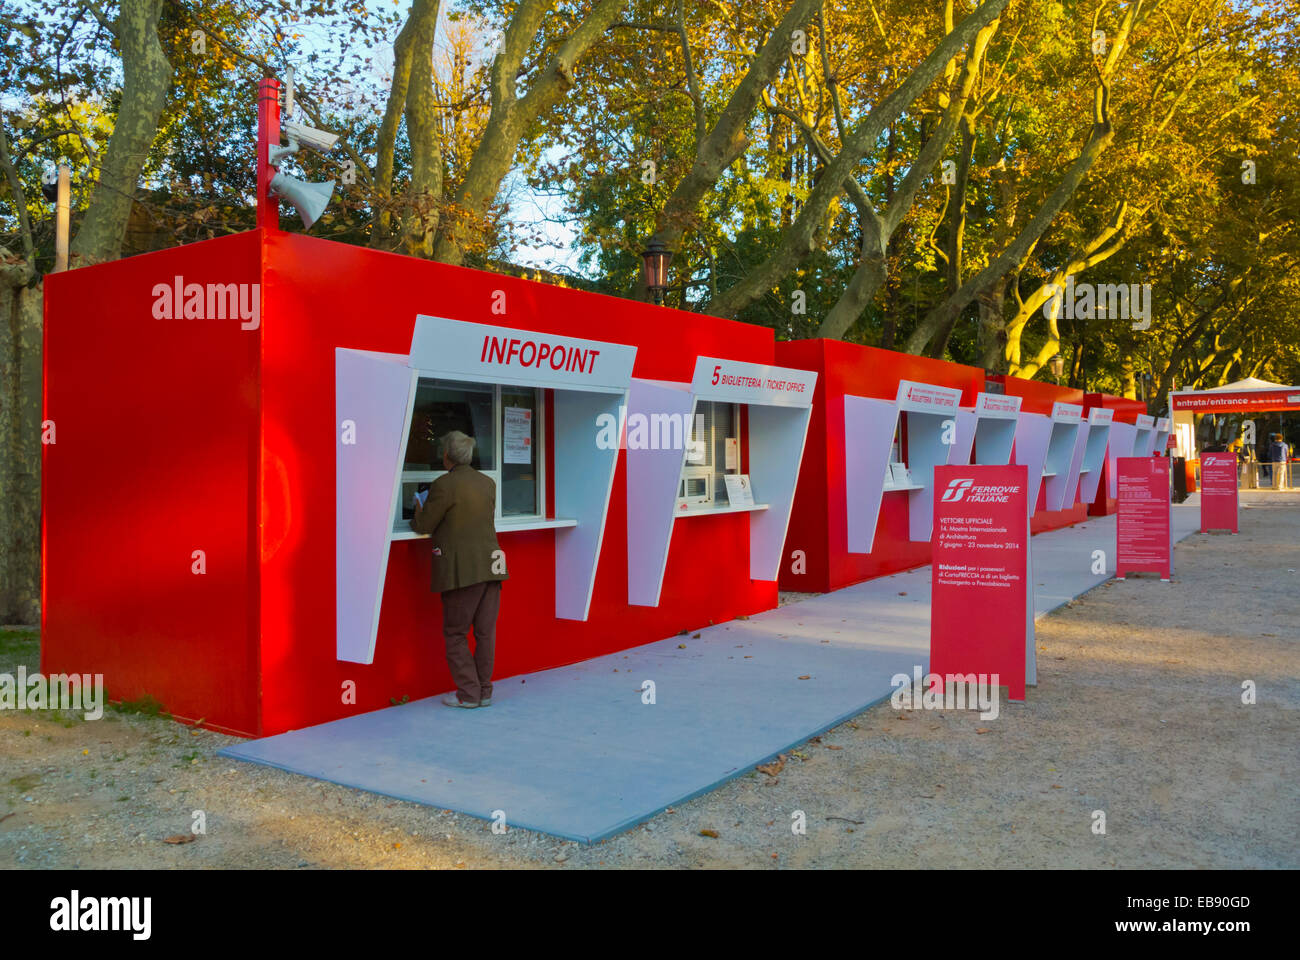 Ticket booths, Giardini della Biennale, park in which Biennale is held, Castello, Venice, Italy - Stock Image